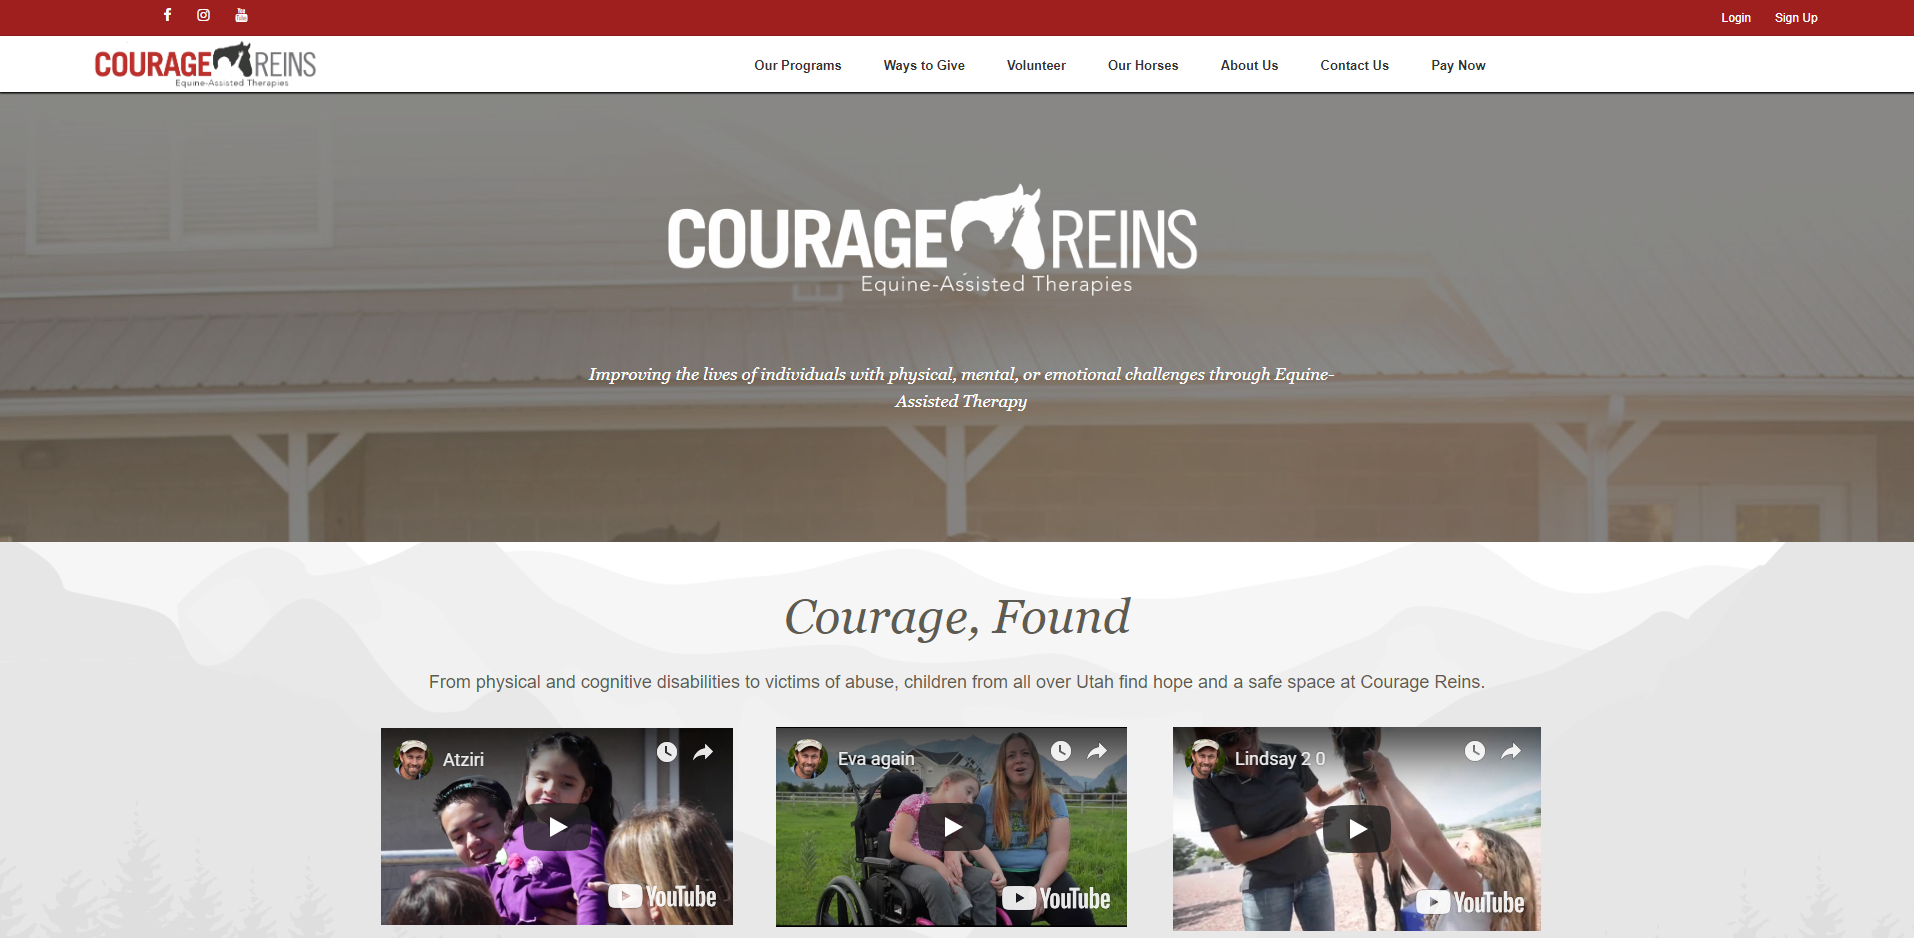 Image of the Courage Reins website displaying the Web Design by EliteWorks Premium Support